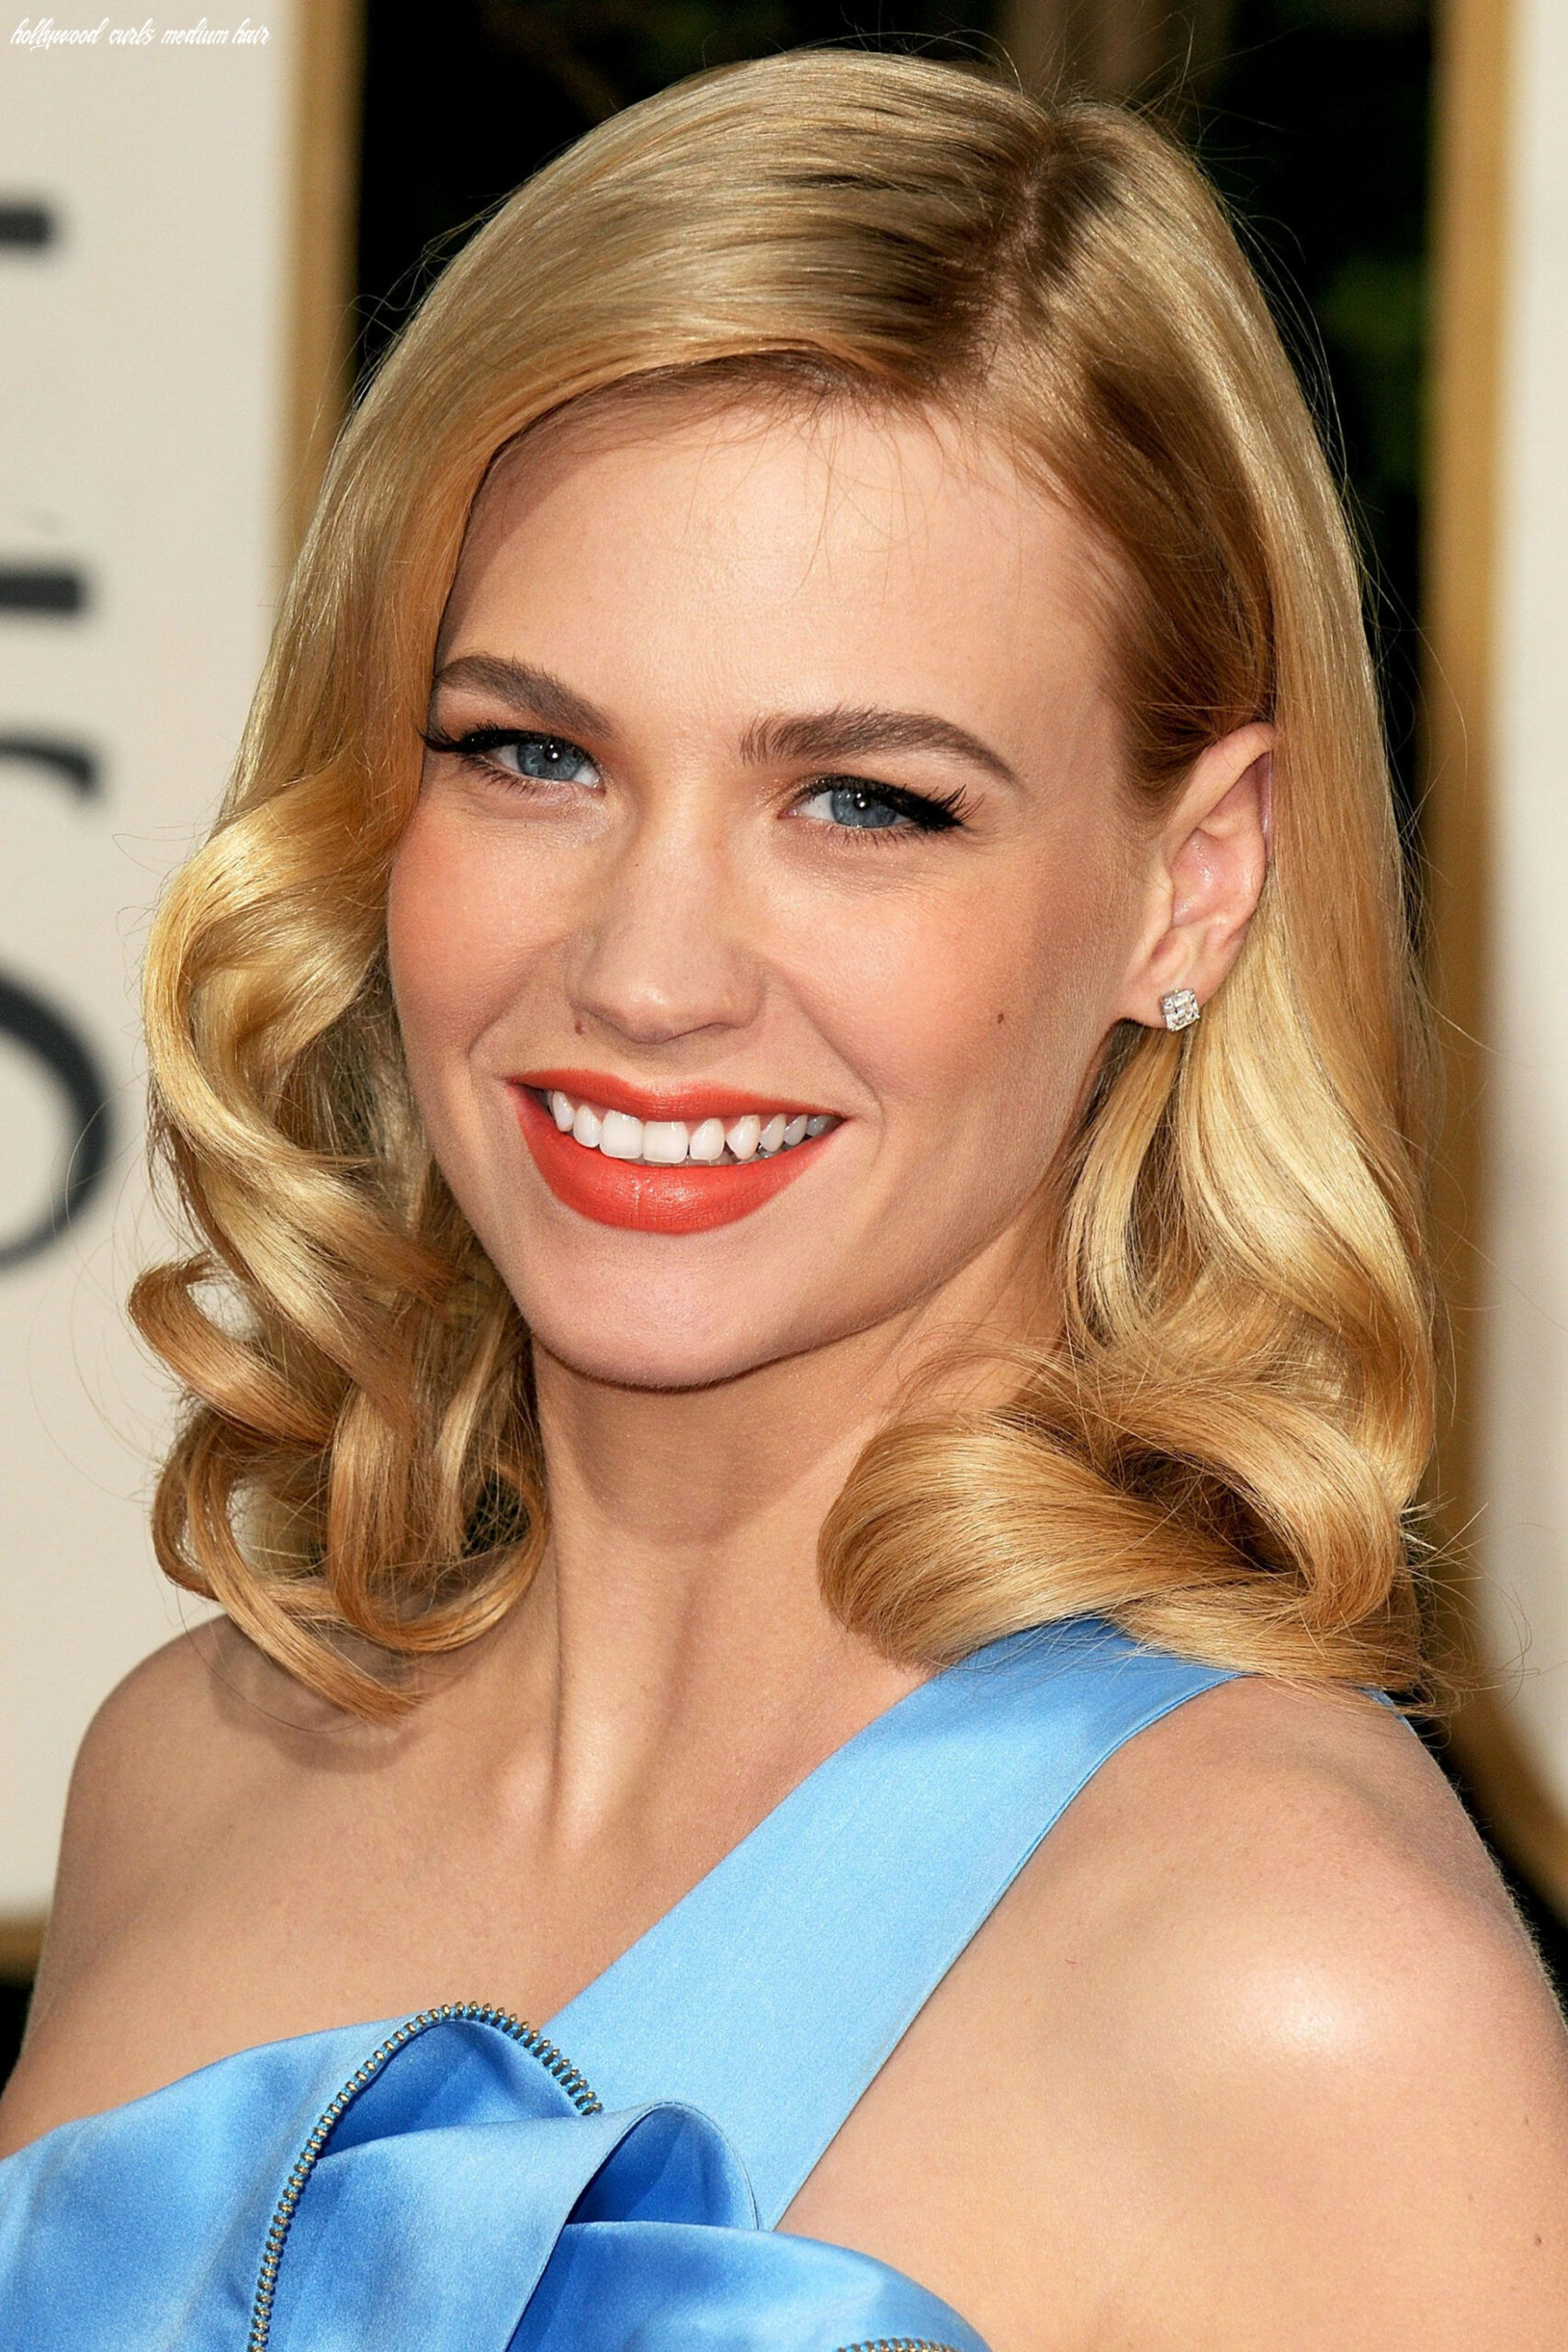 A-List Clientele: January Jones (With images) | Old hollywood hair ...